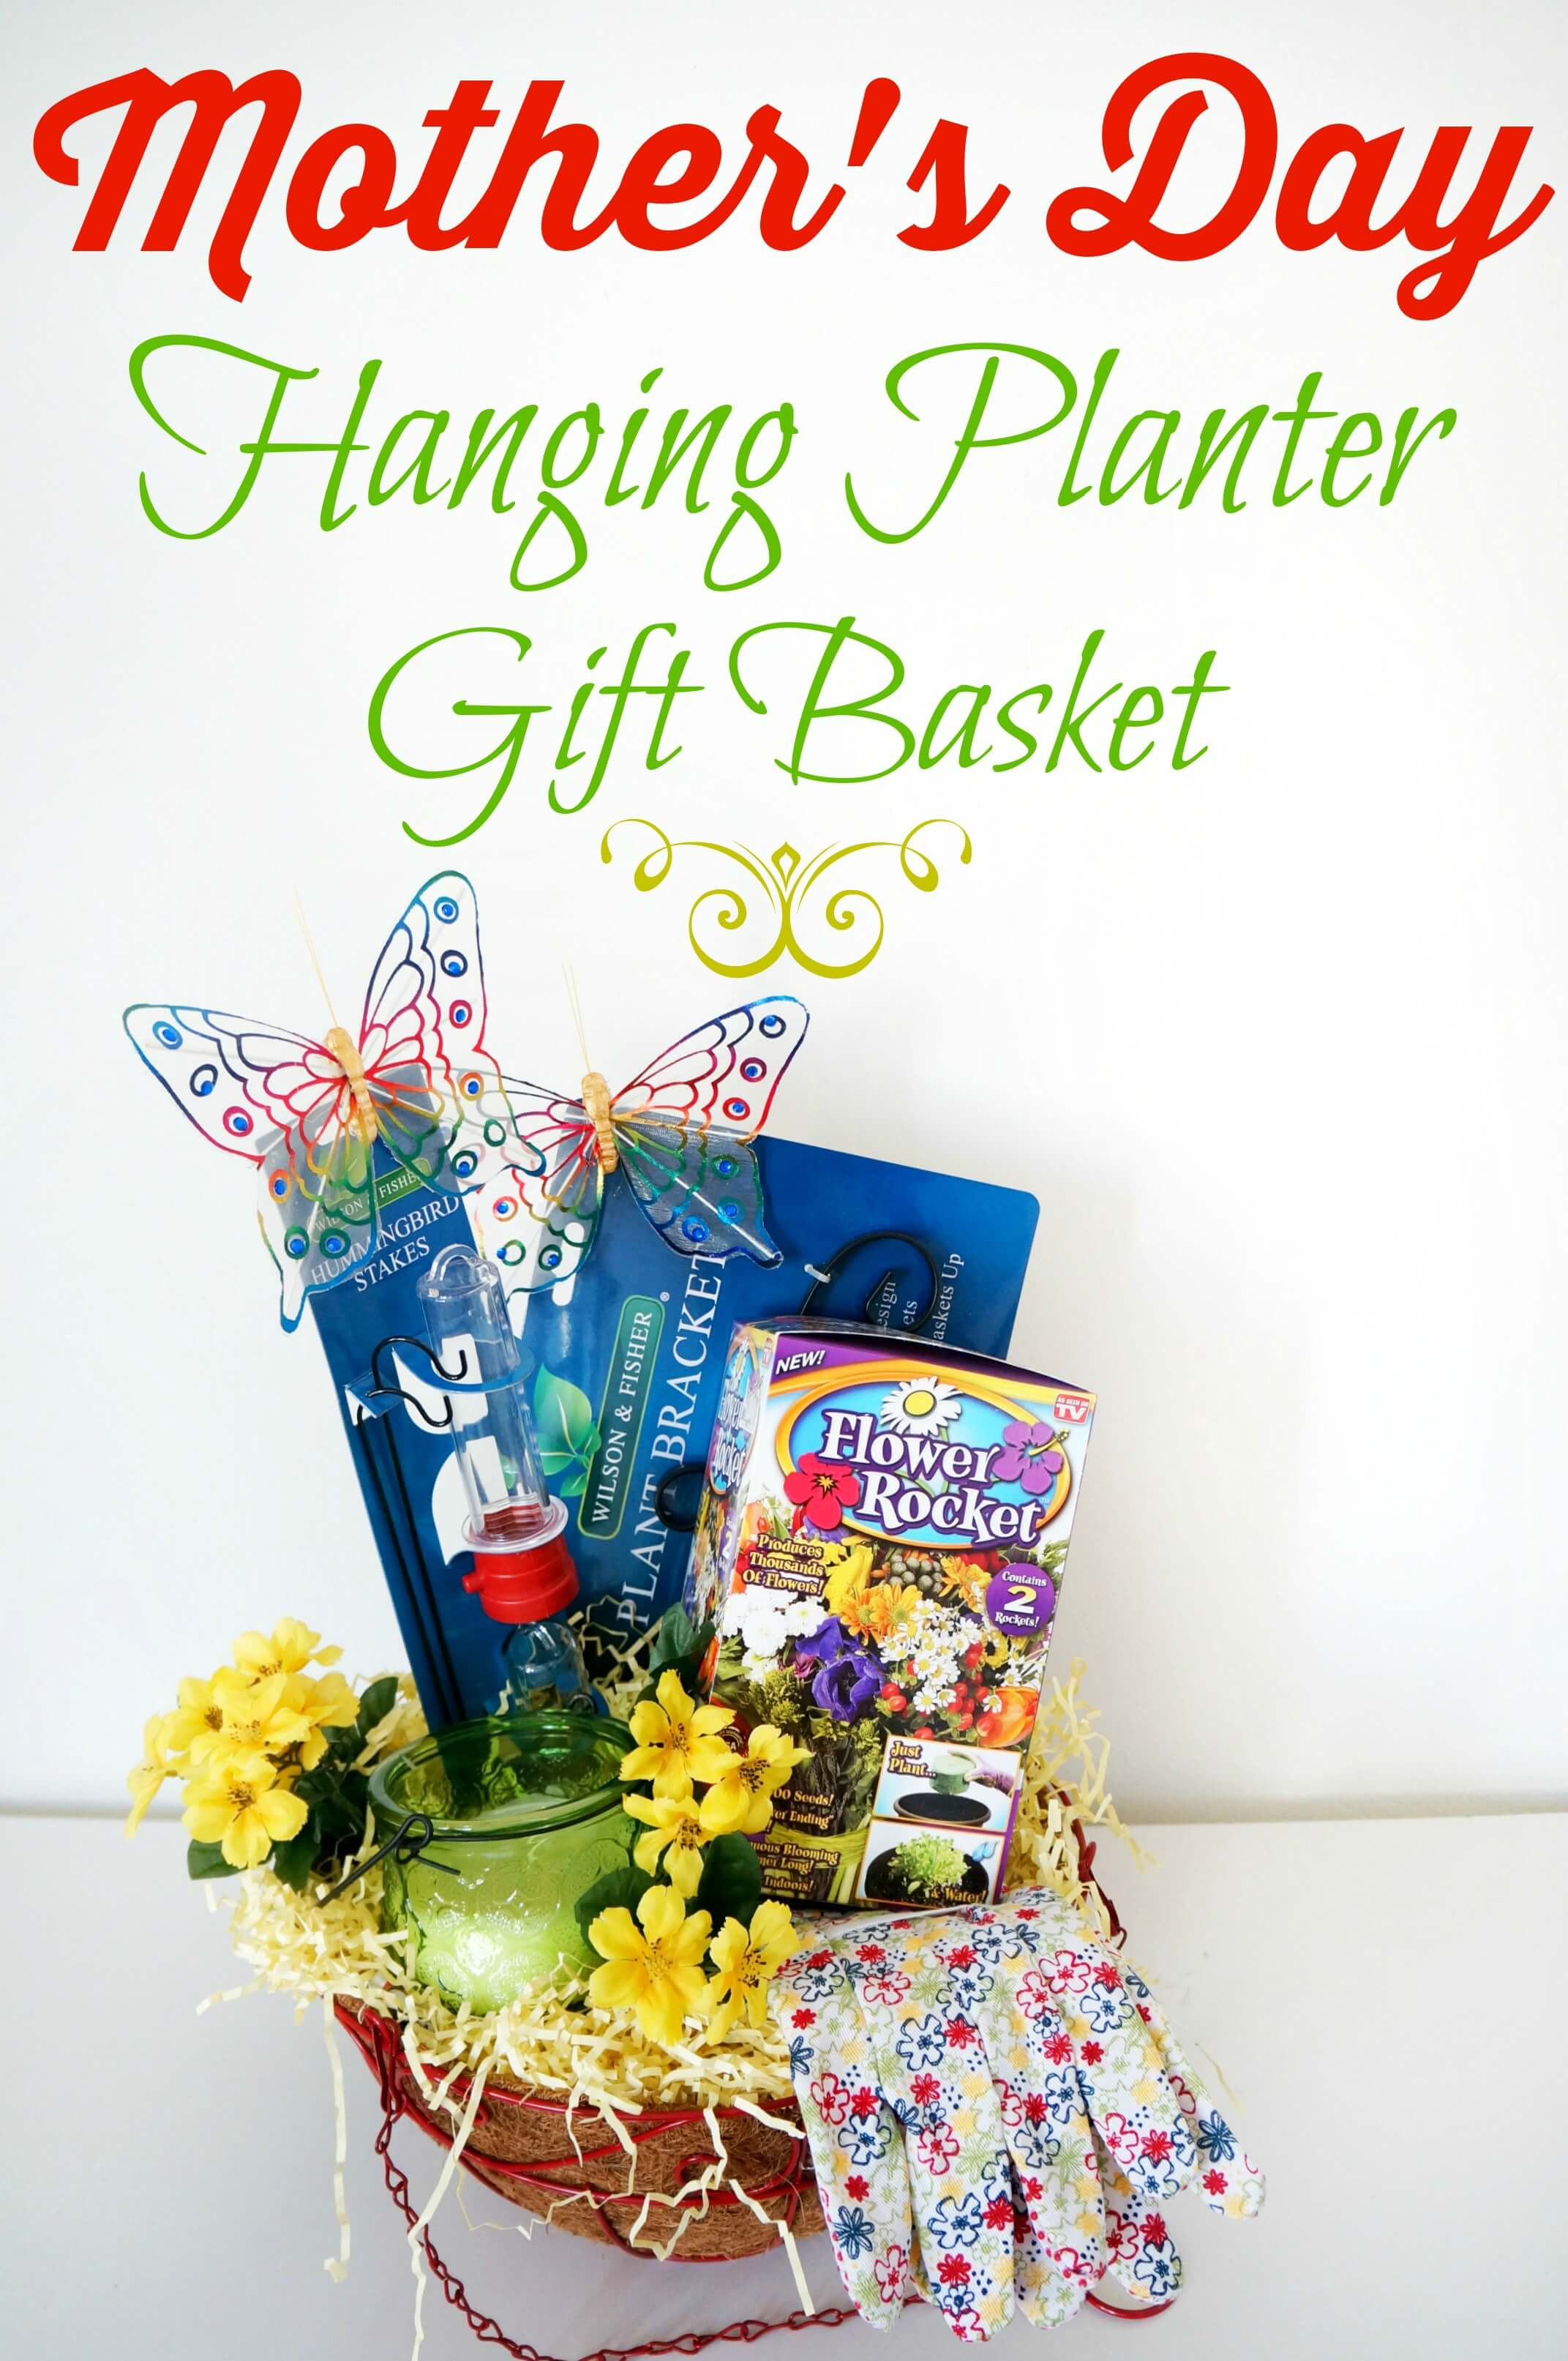 How to assemble a hanging planter gift basket on a budget